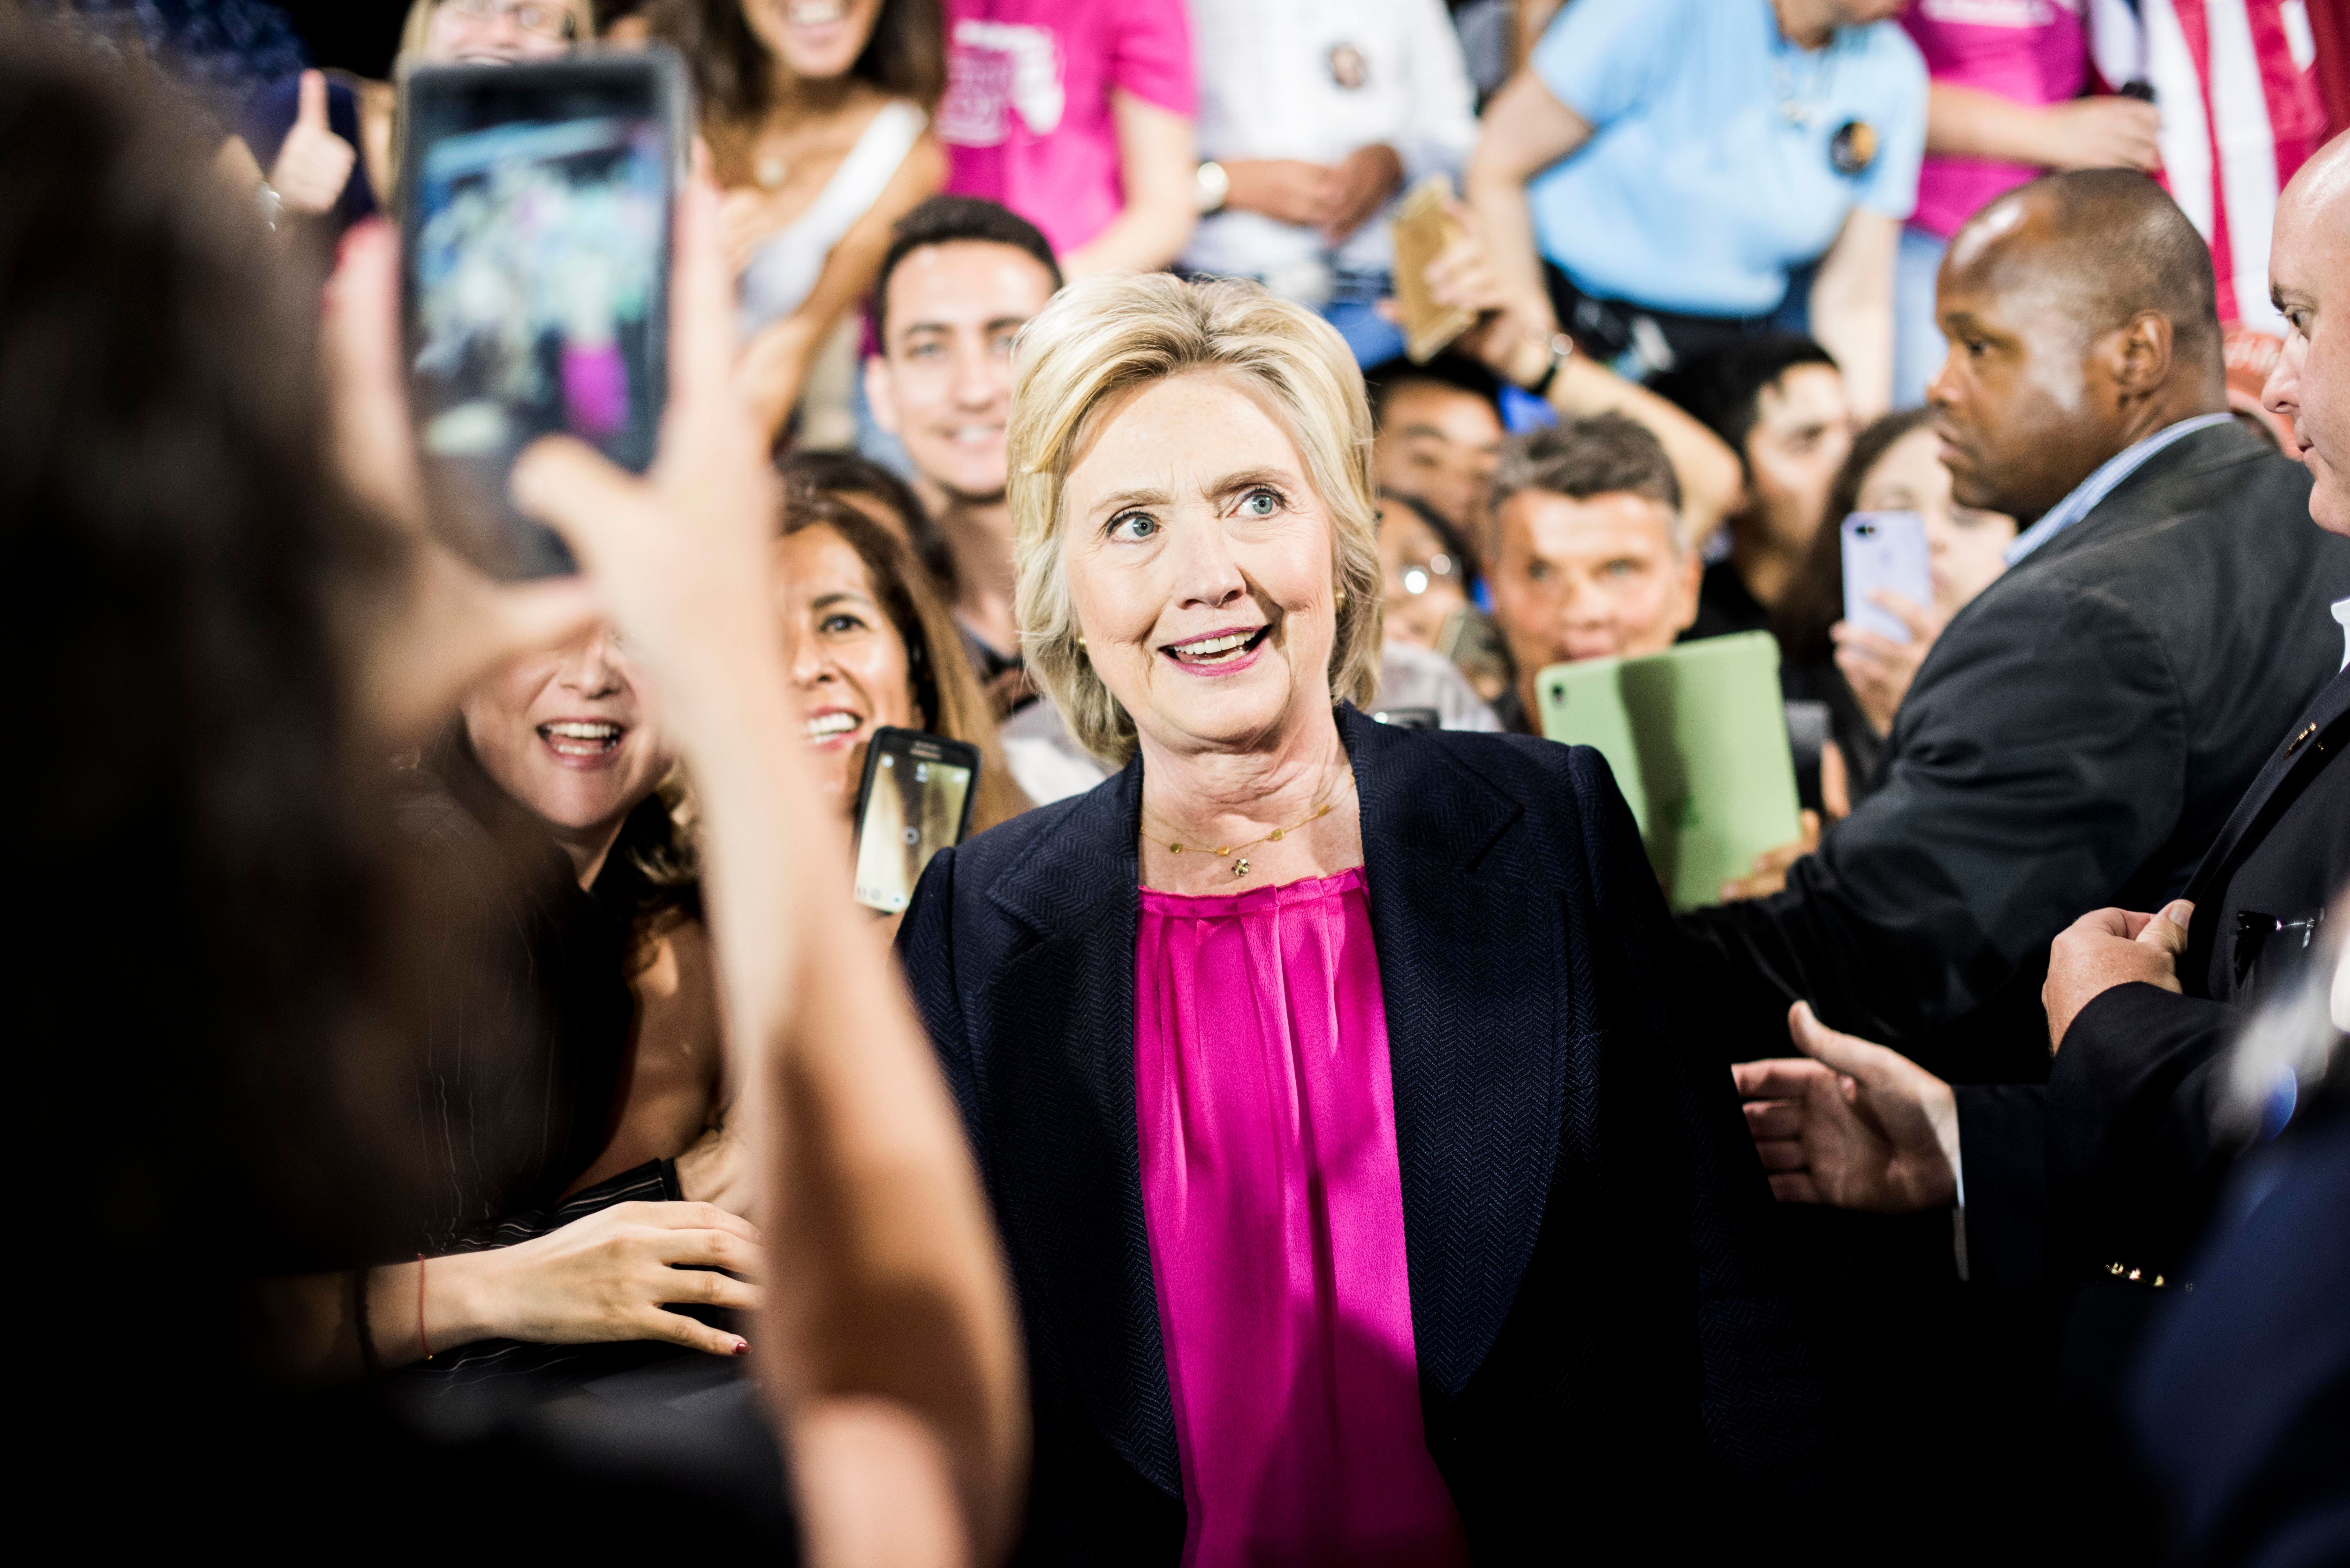 TAMPA, FL - Democratic Nominee for President of the United States former Secretary of State Hillary Clinton speaks to and meets Florida voters during a rally in Tampa, Florida on Tuesday September 6, 2016. (Photo by Melina Mara/The Washington Post via Getty Images)